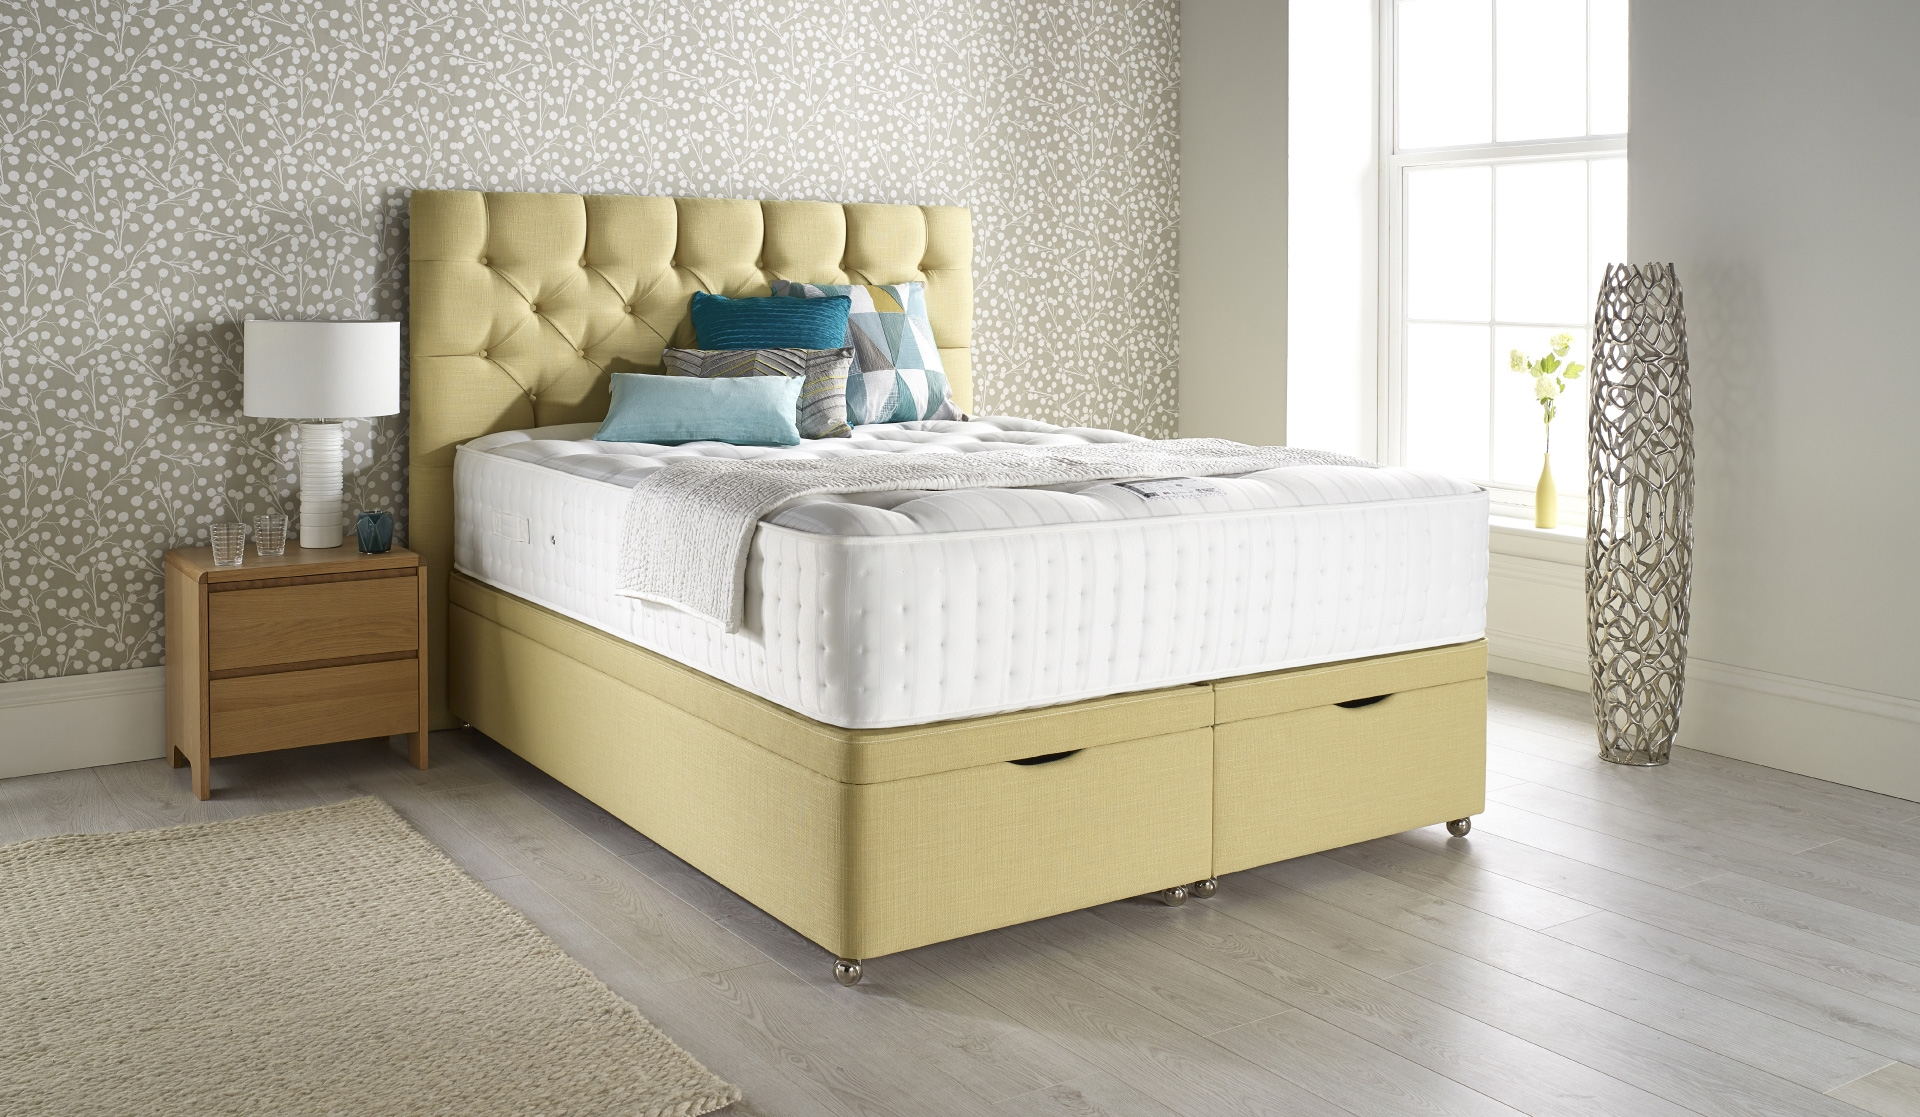 Relyon Natural Ortho Superb 2200 Pocket Sprung Divan Bed